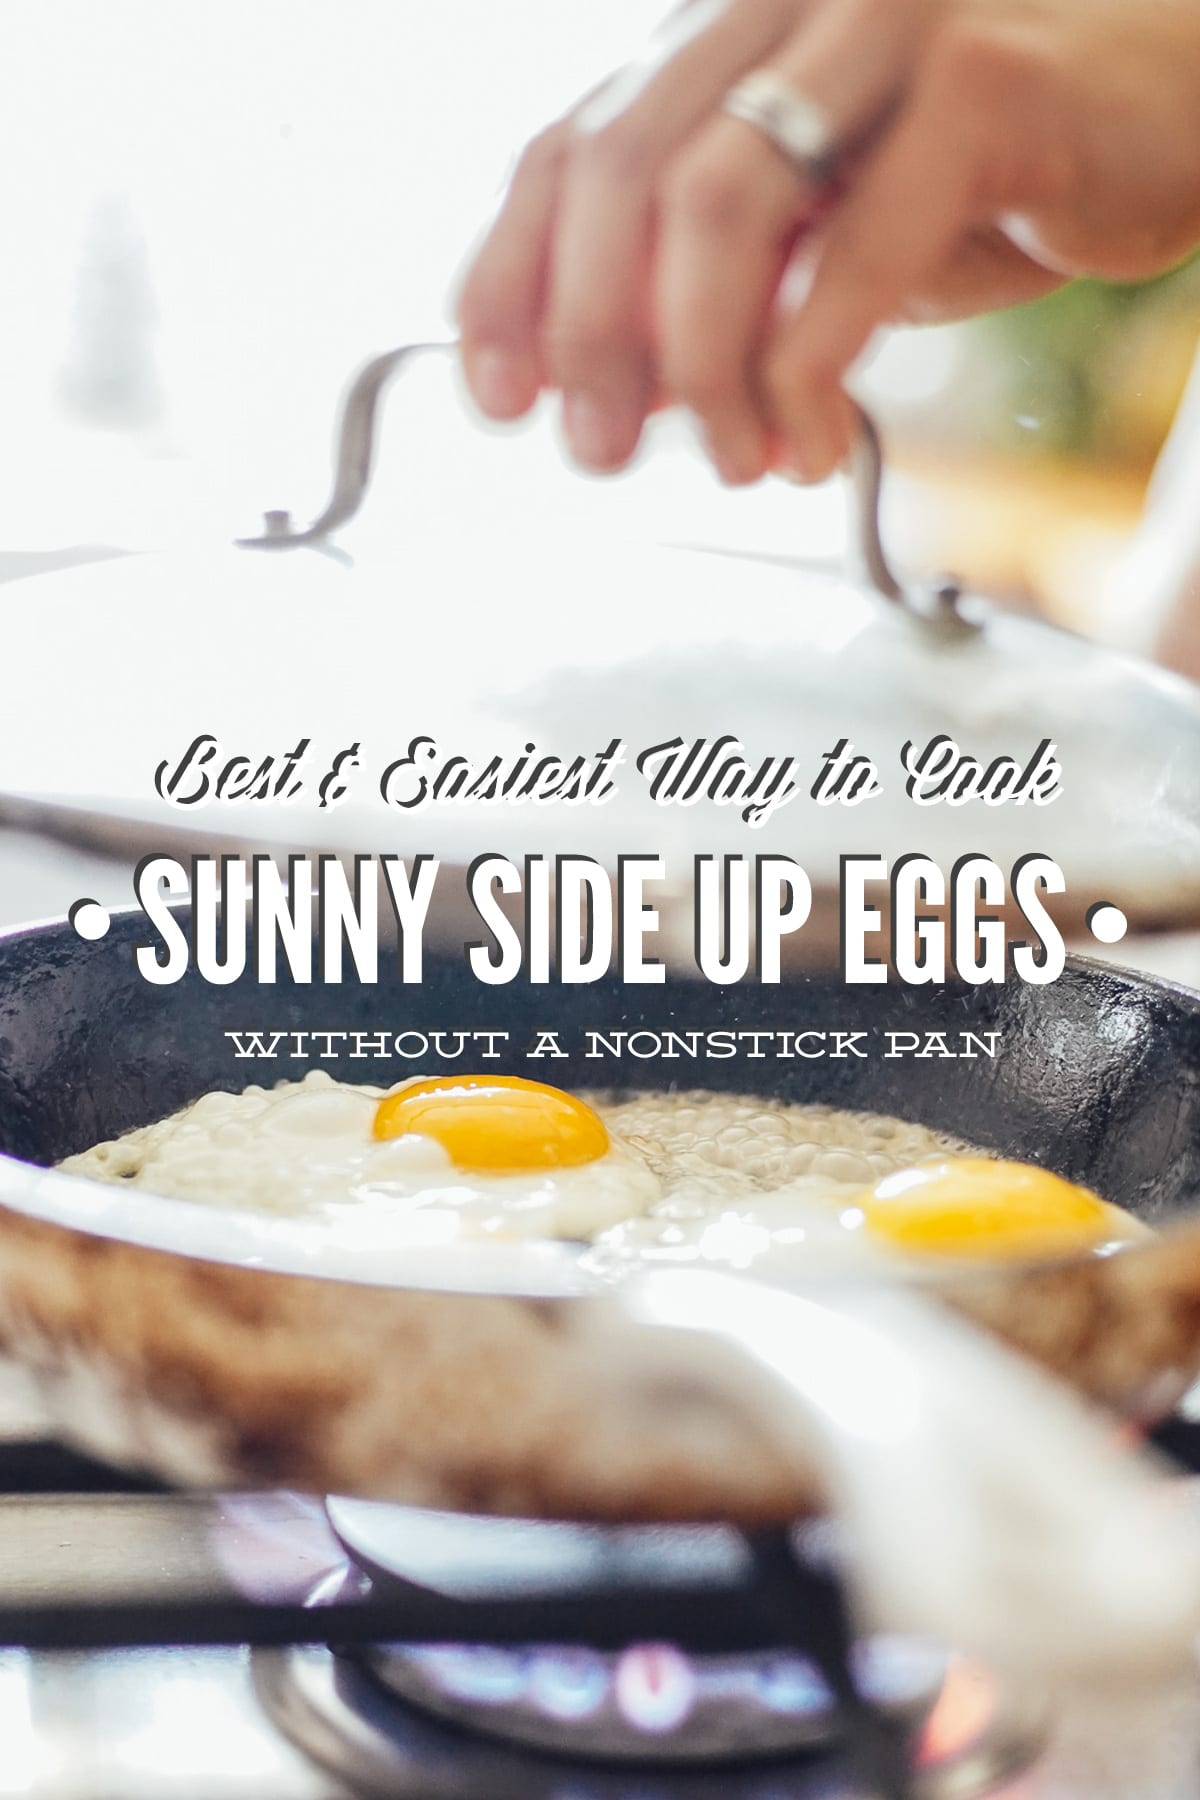 Best and Easiest Way to Cook Sunny side Up Eggs